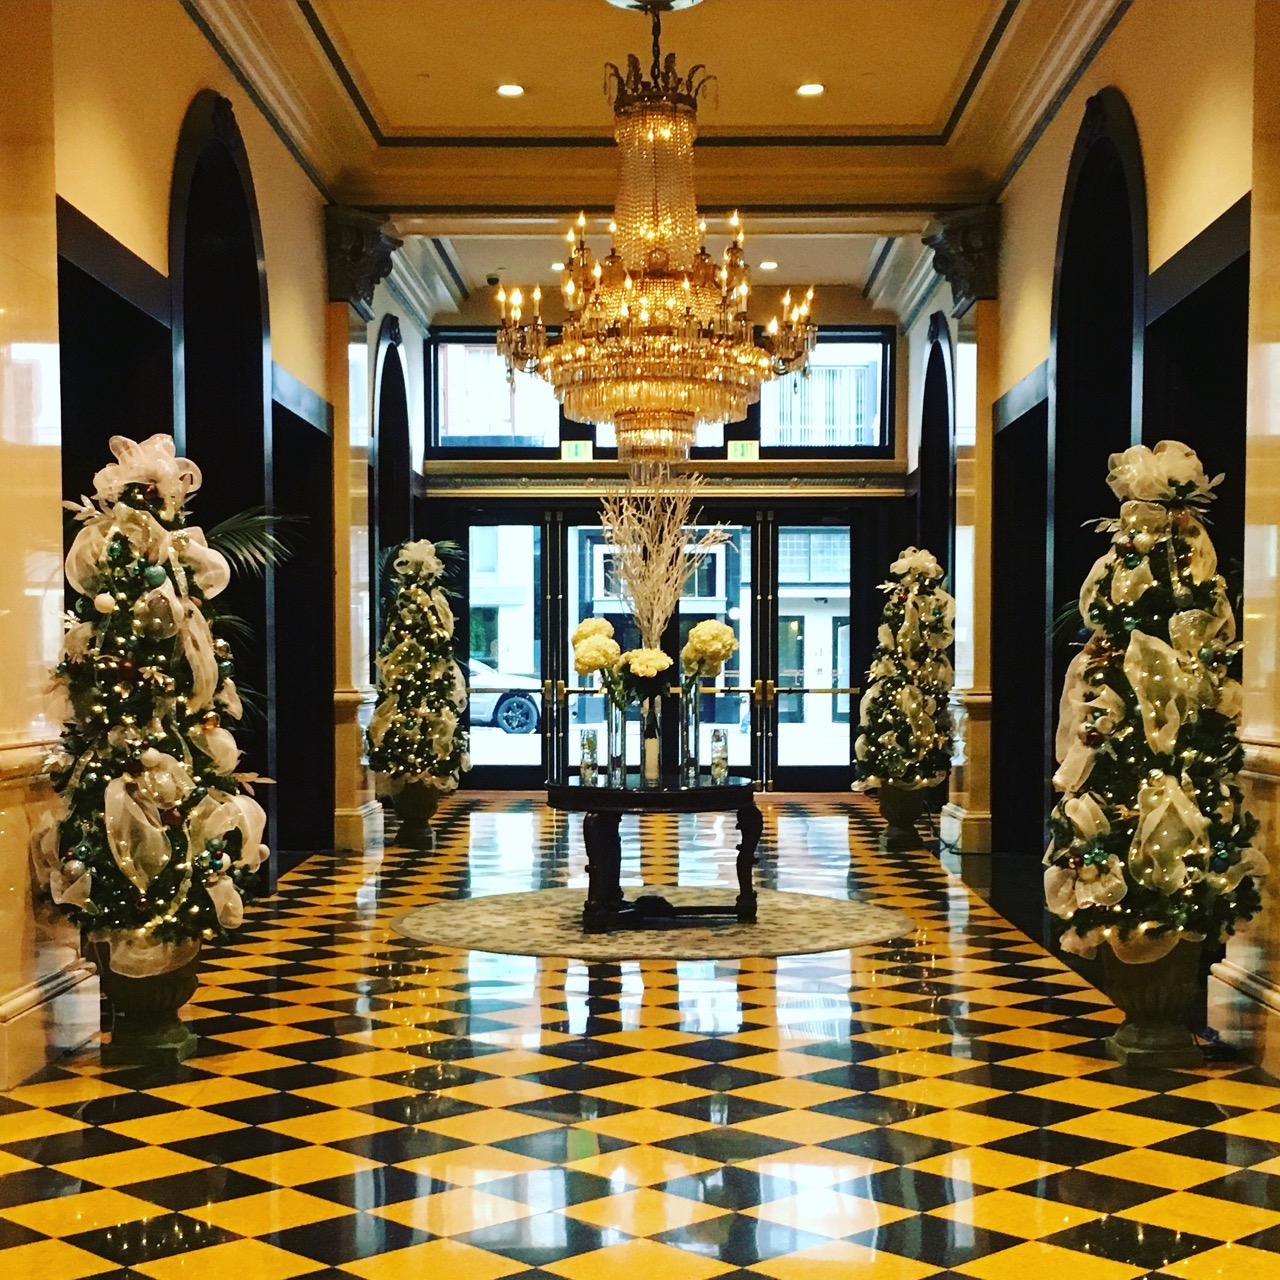 Lobby of the US Grant Hotel in San Diego's Gaslamp District (photo by Yvonne Condes)